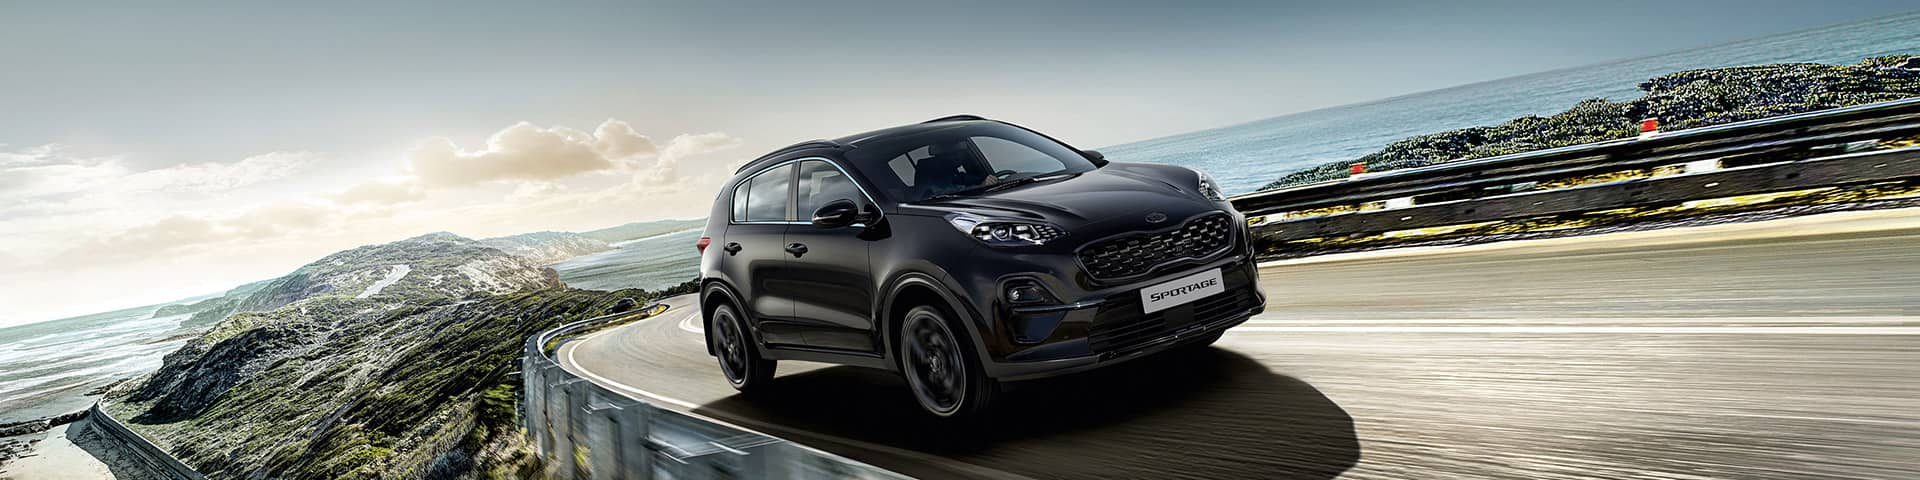 Kia Sportage Black Edition